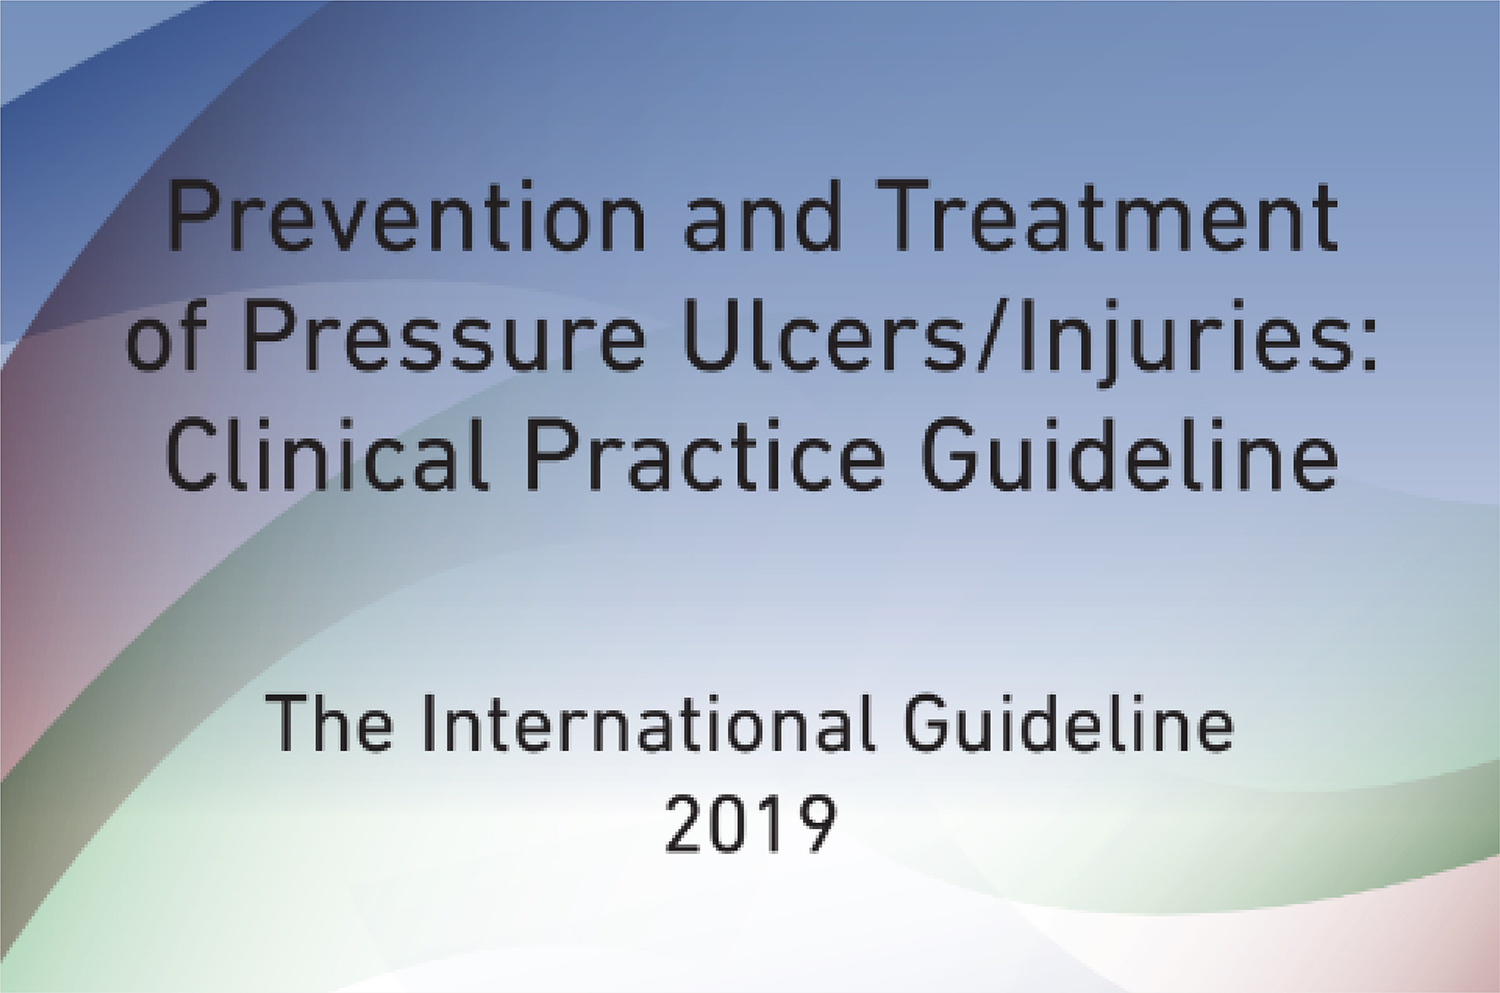 Prevention and treatement of pressure ulcers / injuries : clinical practice guidelines 2019